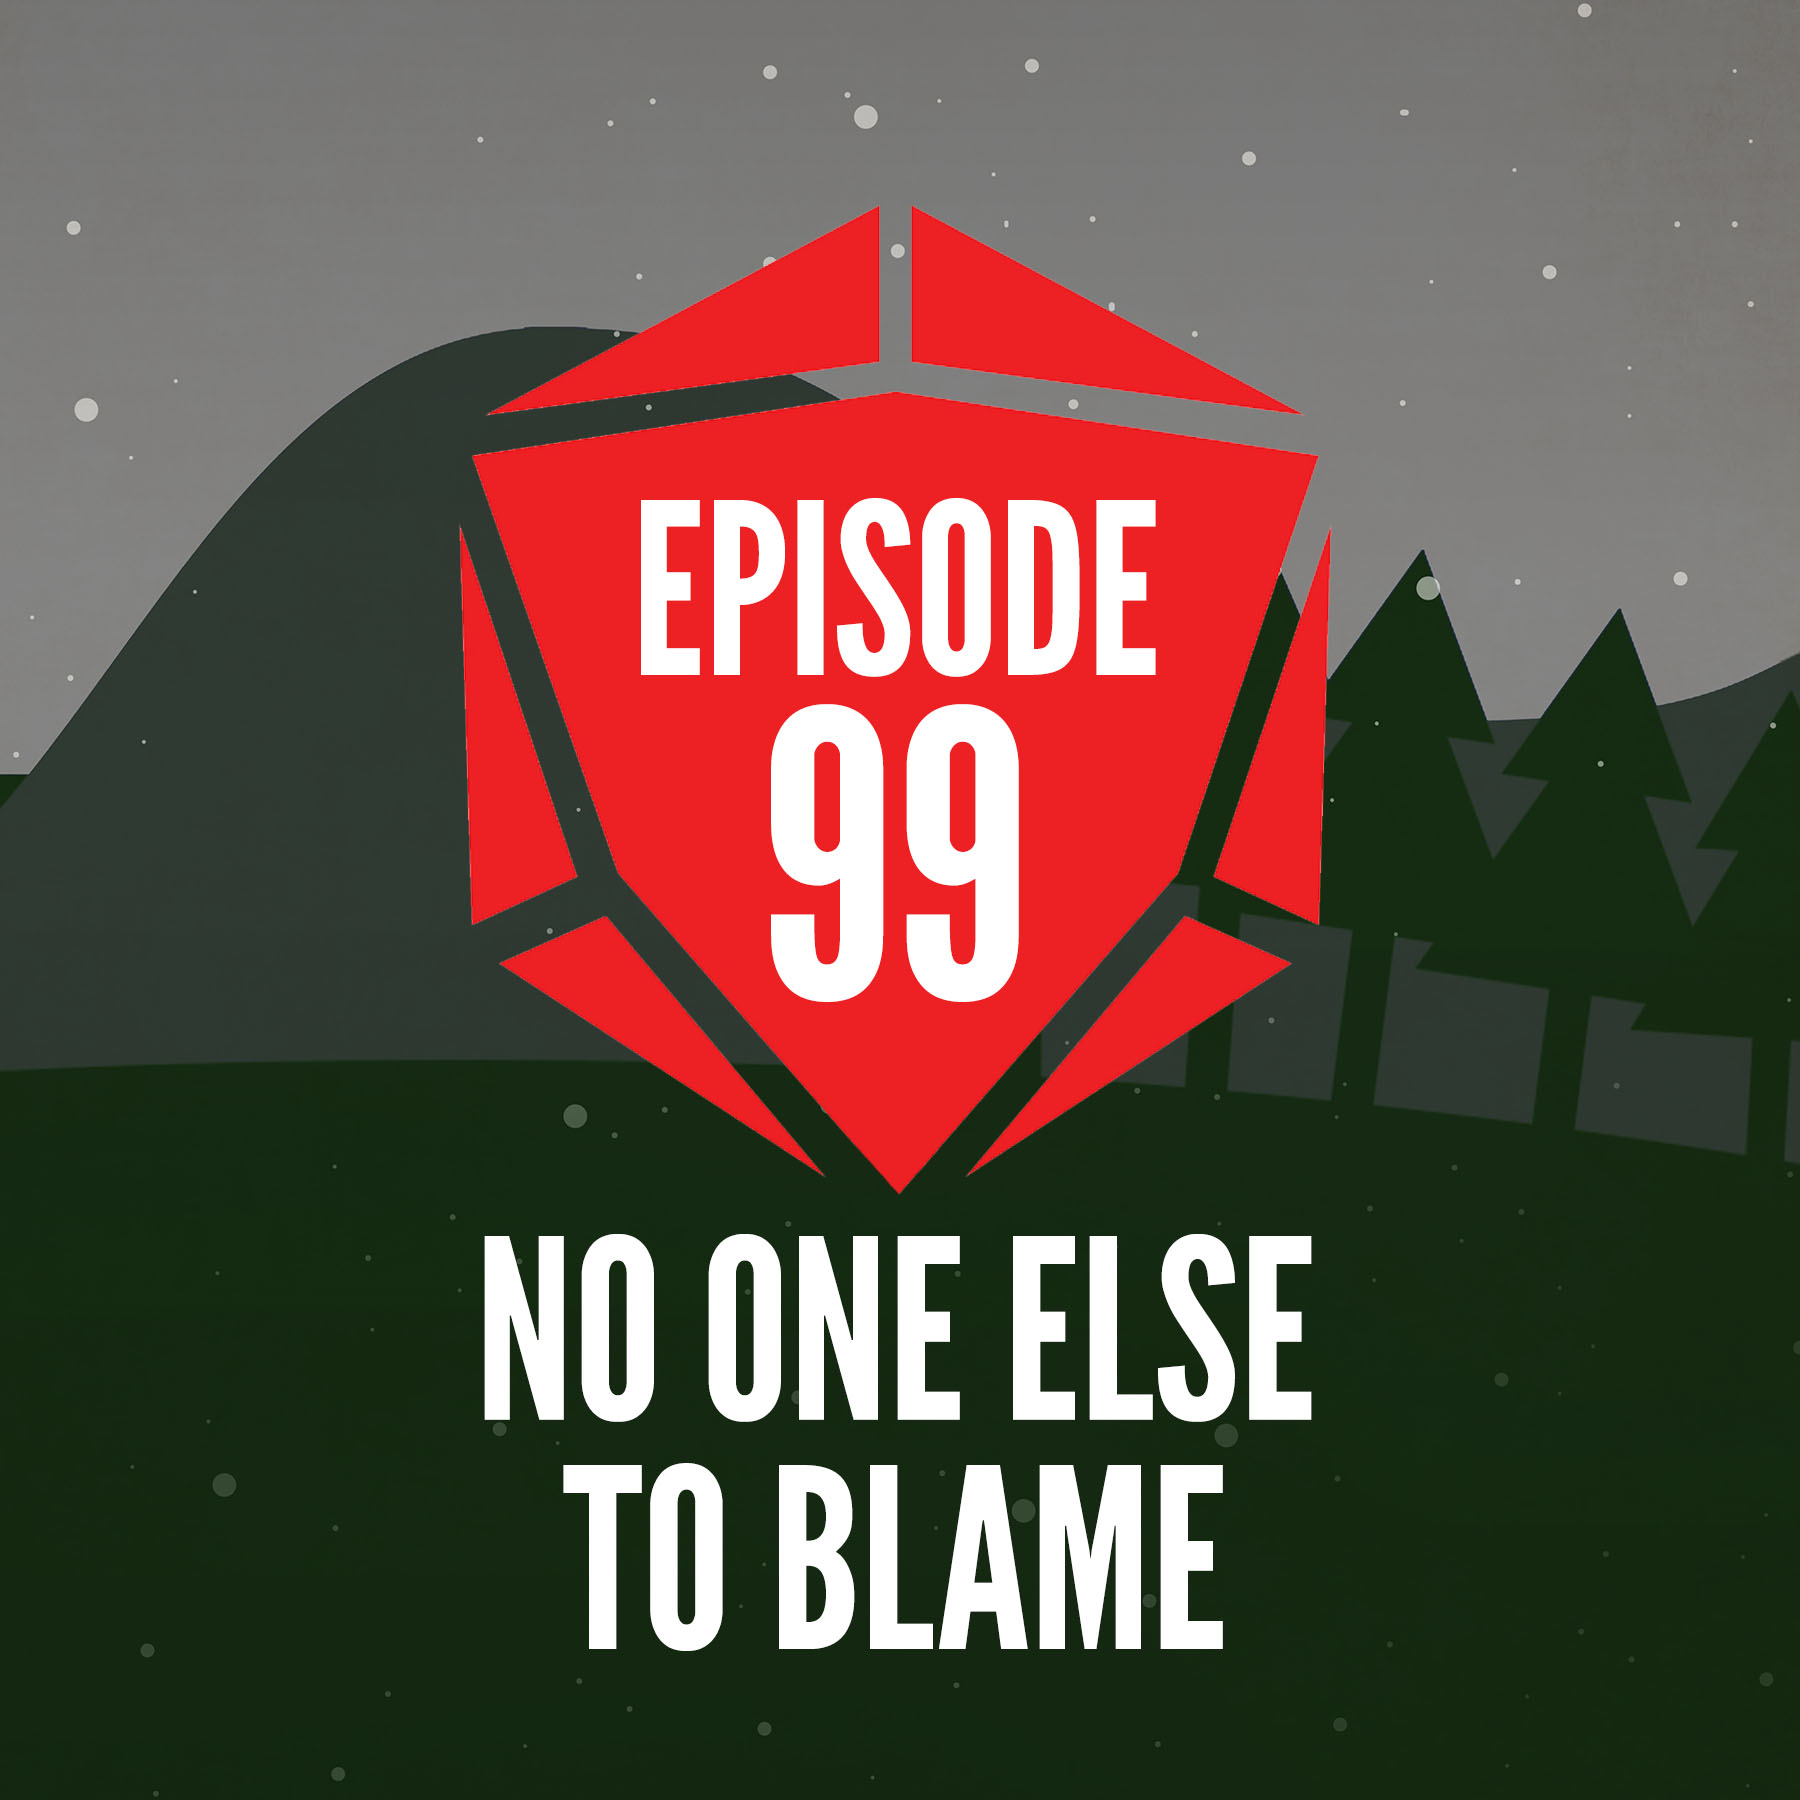 Episode 99: No One Else To Blame